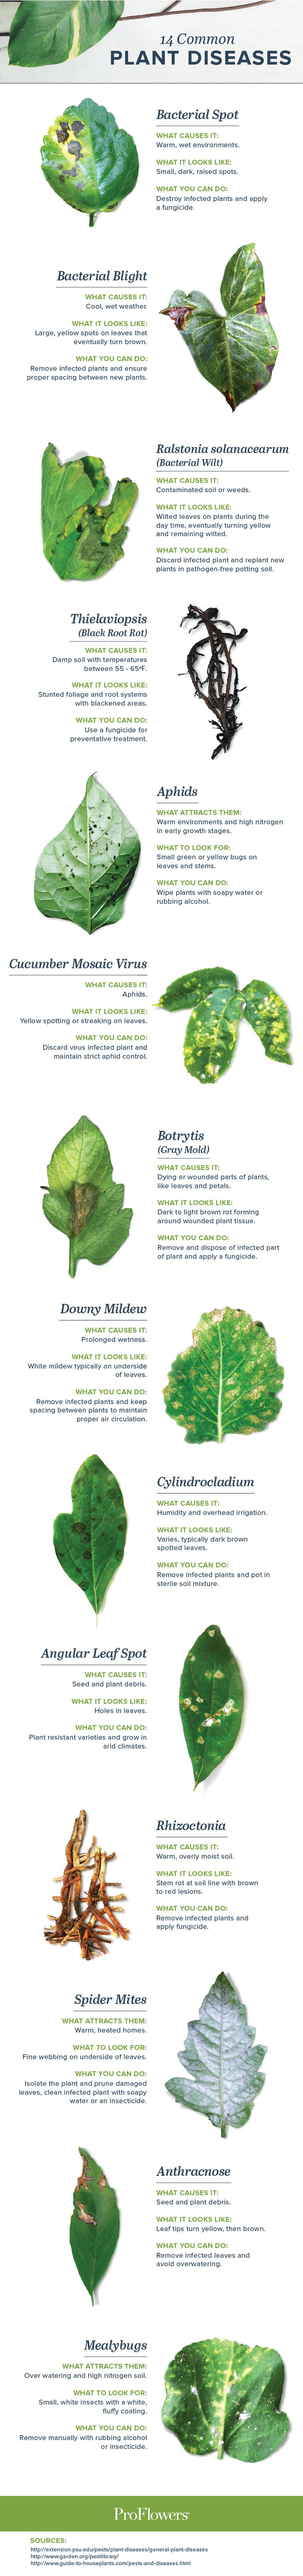 Is your plant looking a little yellow, brown or wilted? It could be a sign of plant disease. Use this guide to identify & treat common plant diseases.